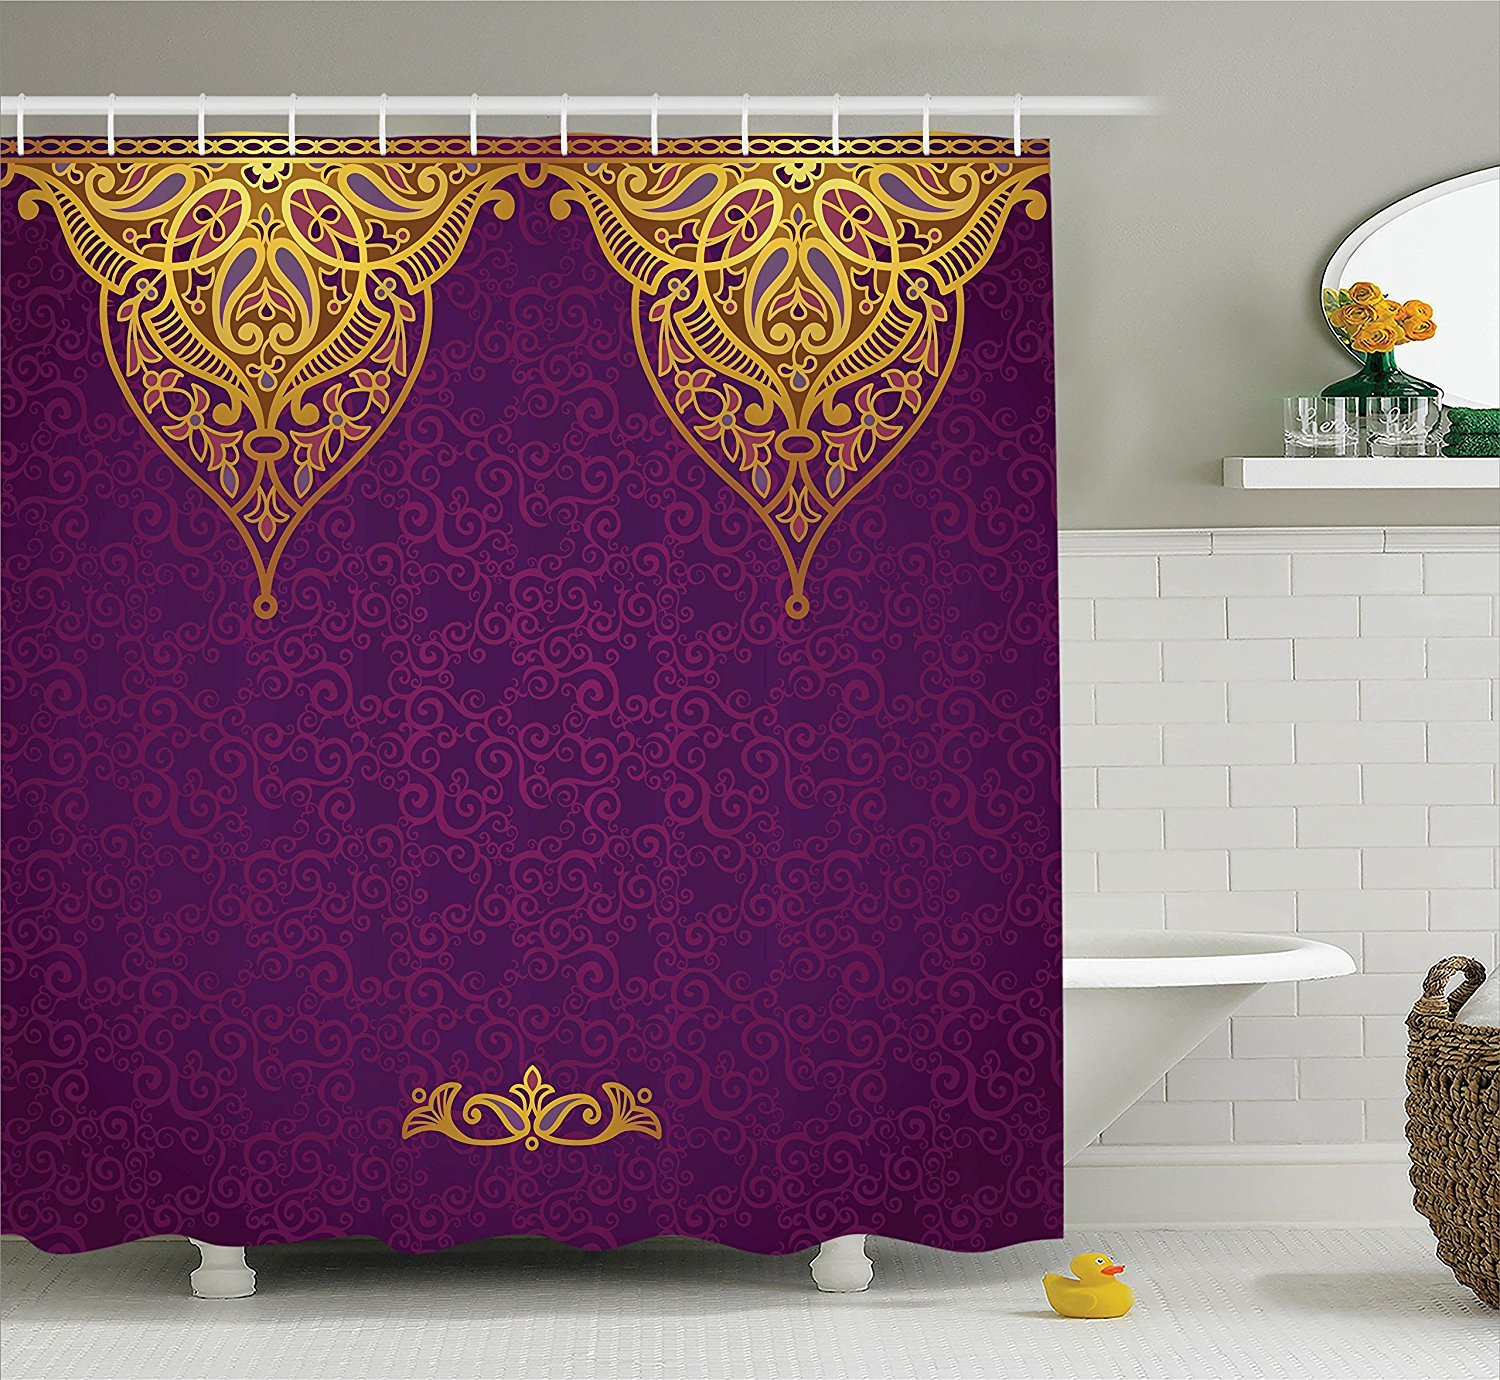 Boho Royal Palace Purple Gold Shower Curtain Design Styles